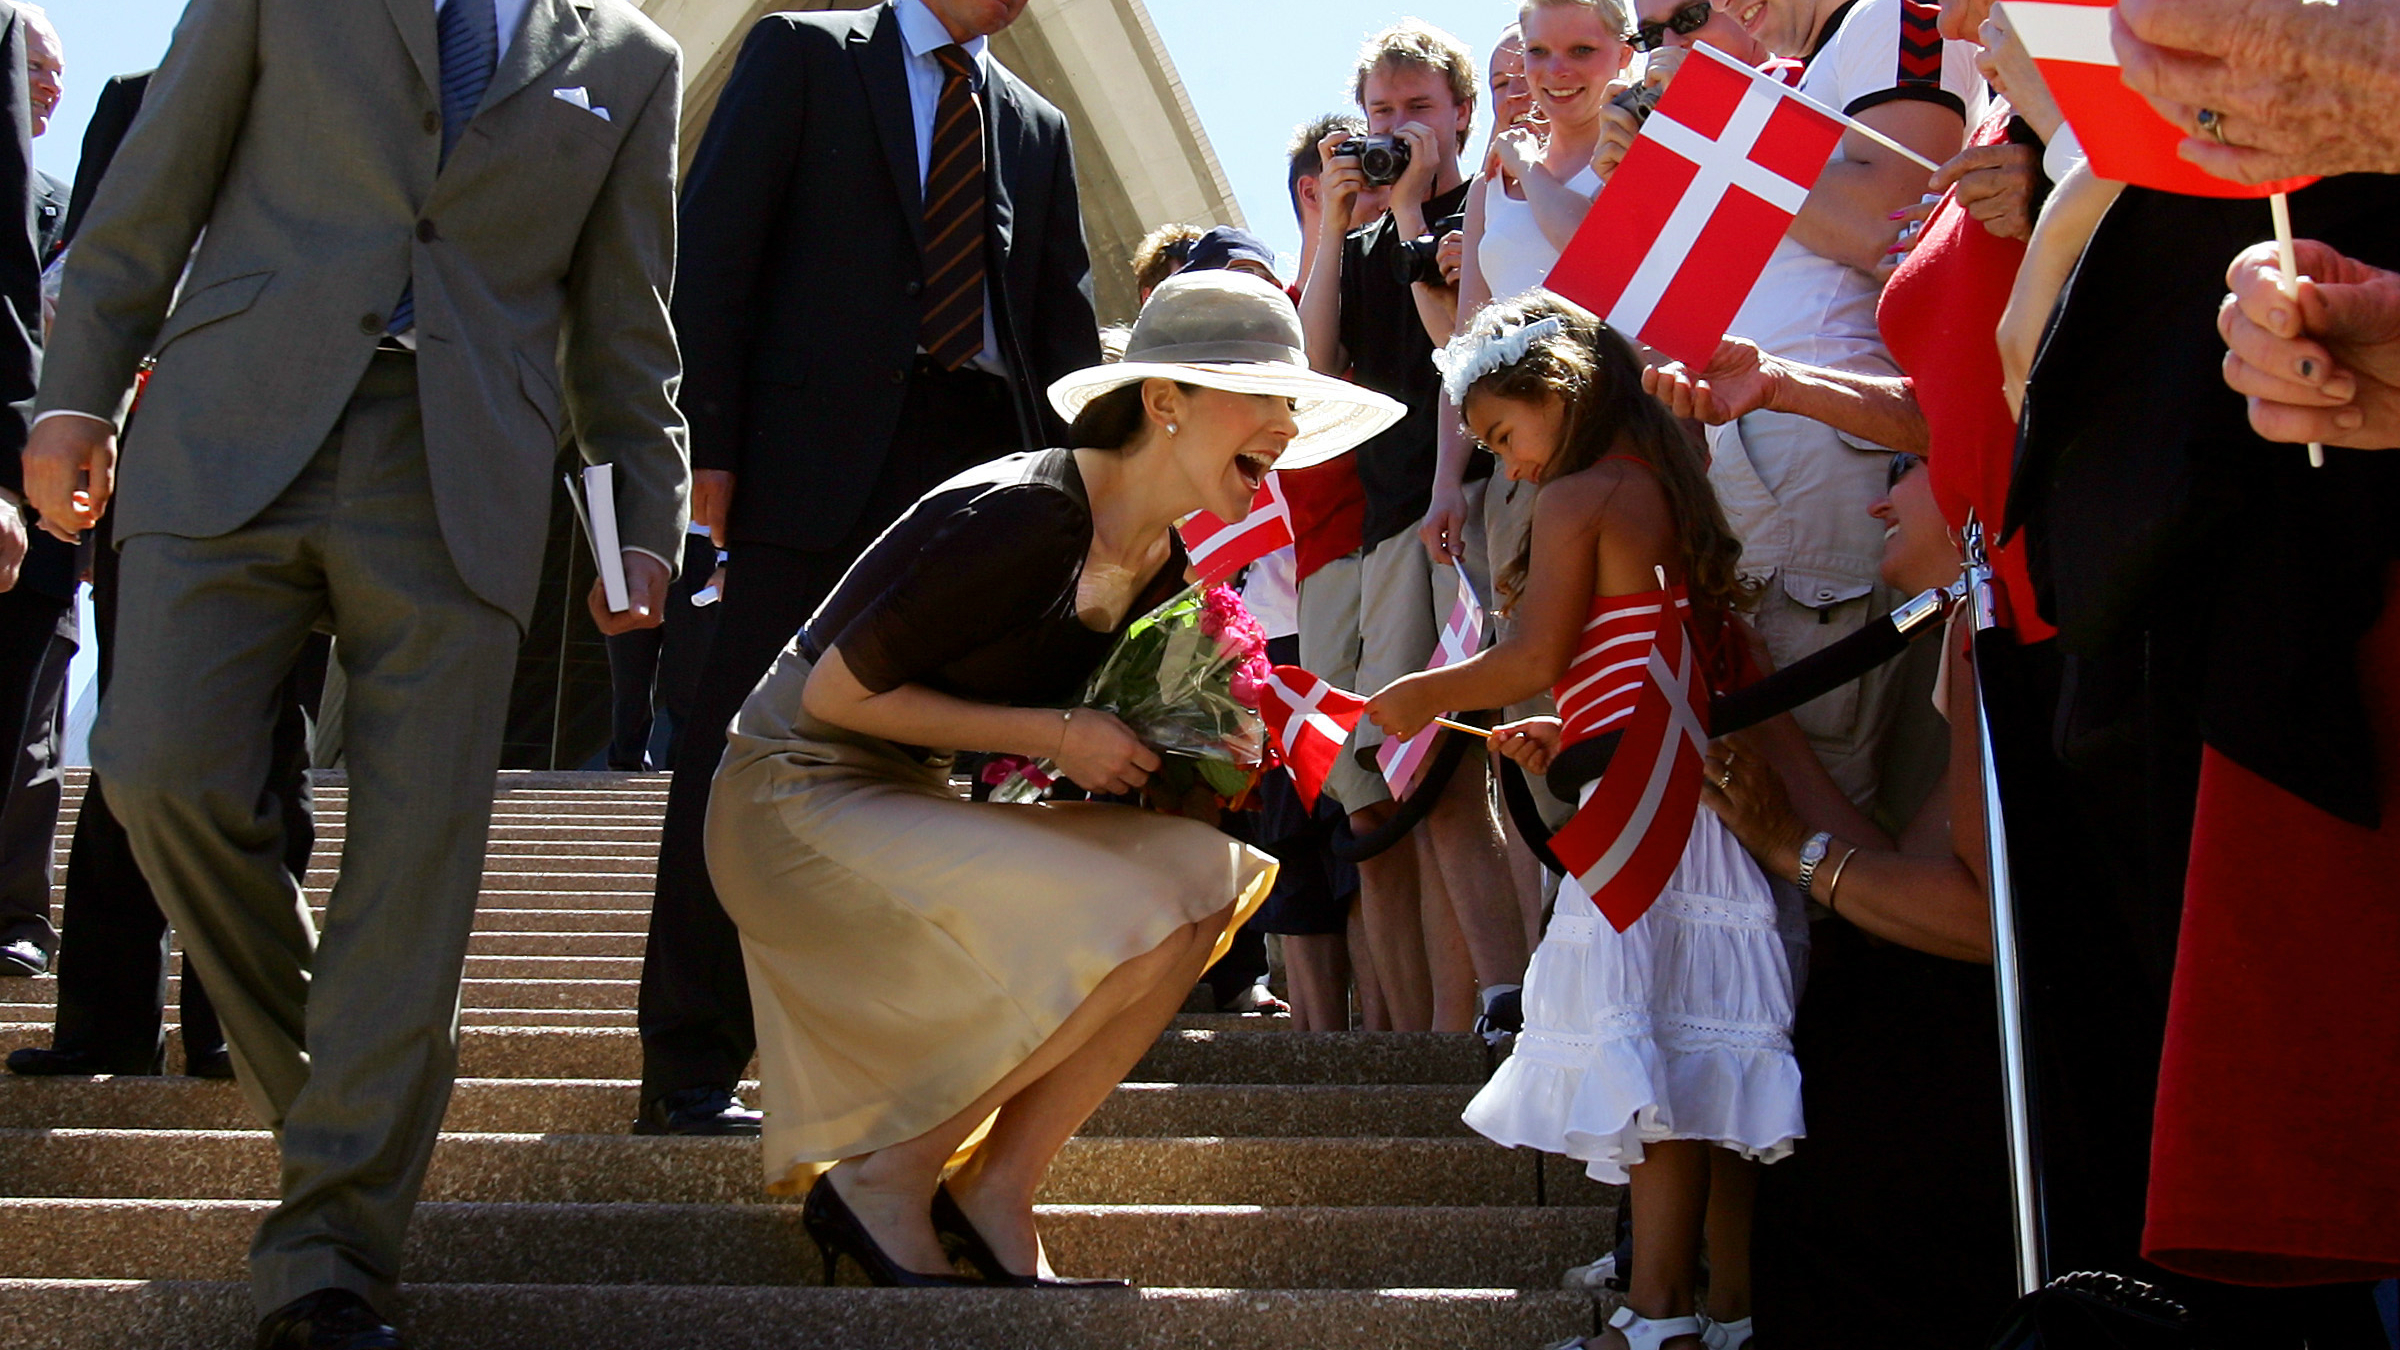 Denmark's Crown Princess Mary greets a girl in the crowd on the steps of the Sydney Opera House.